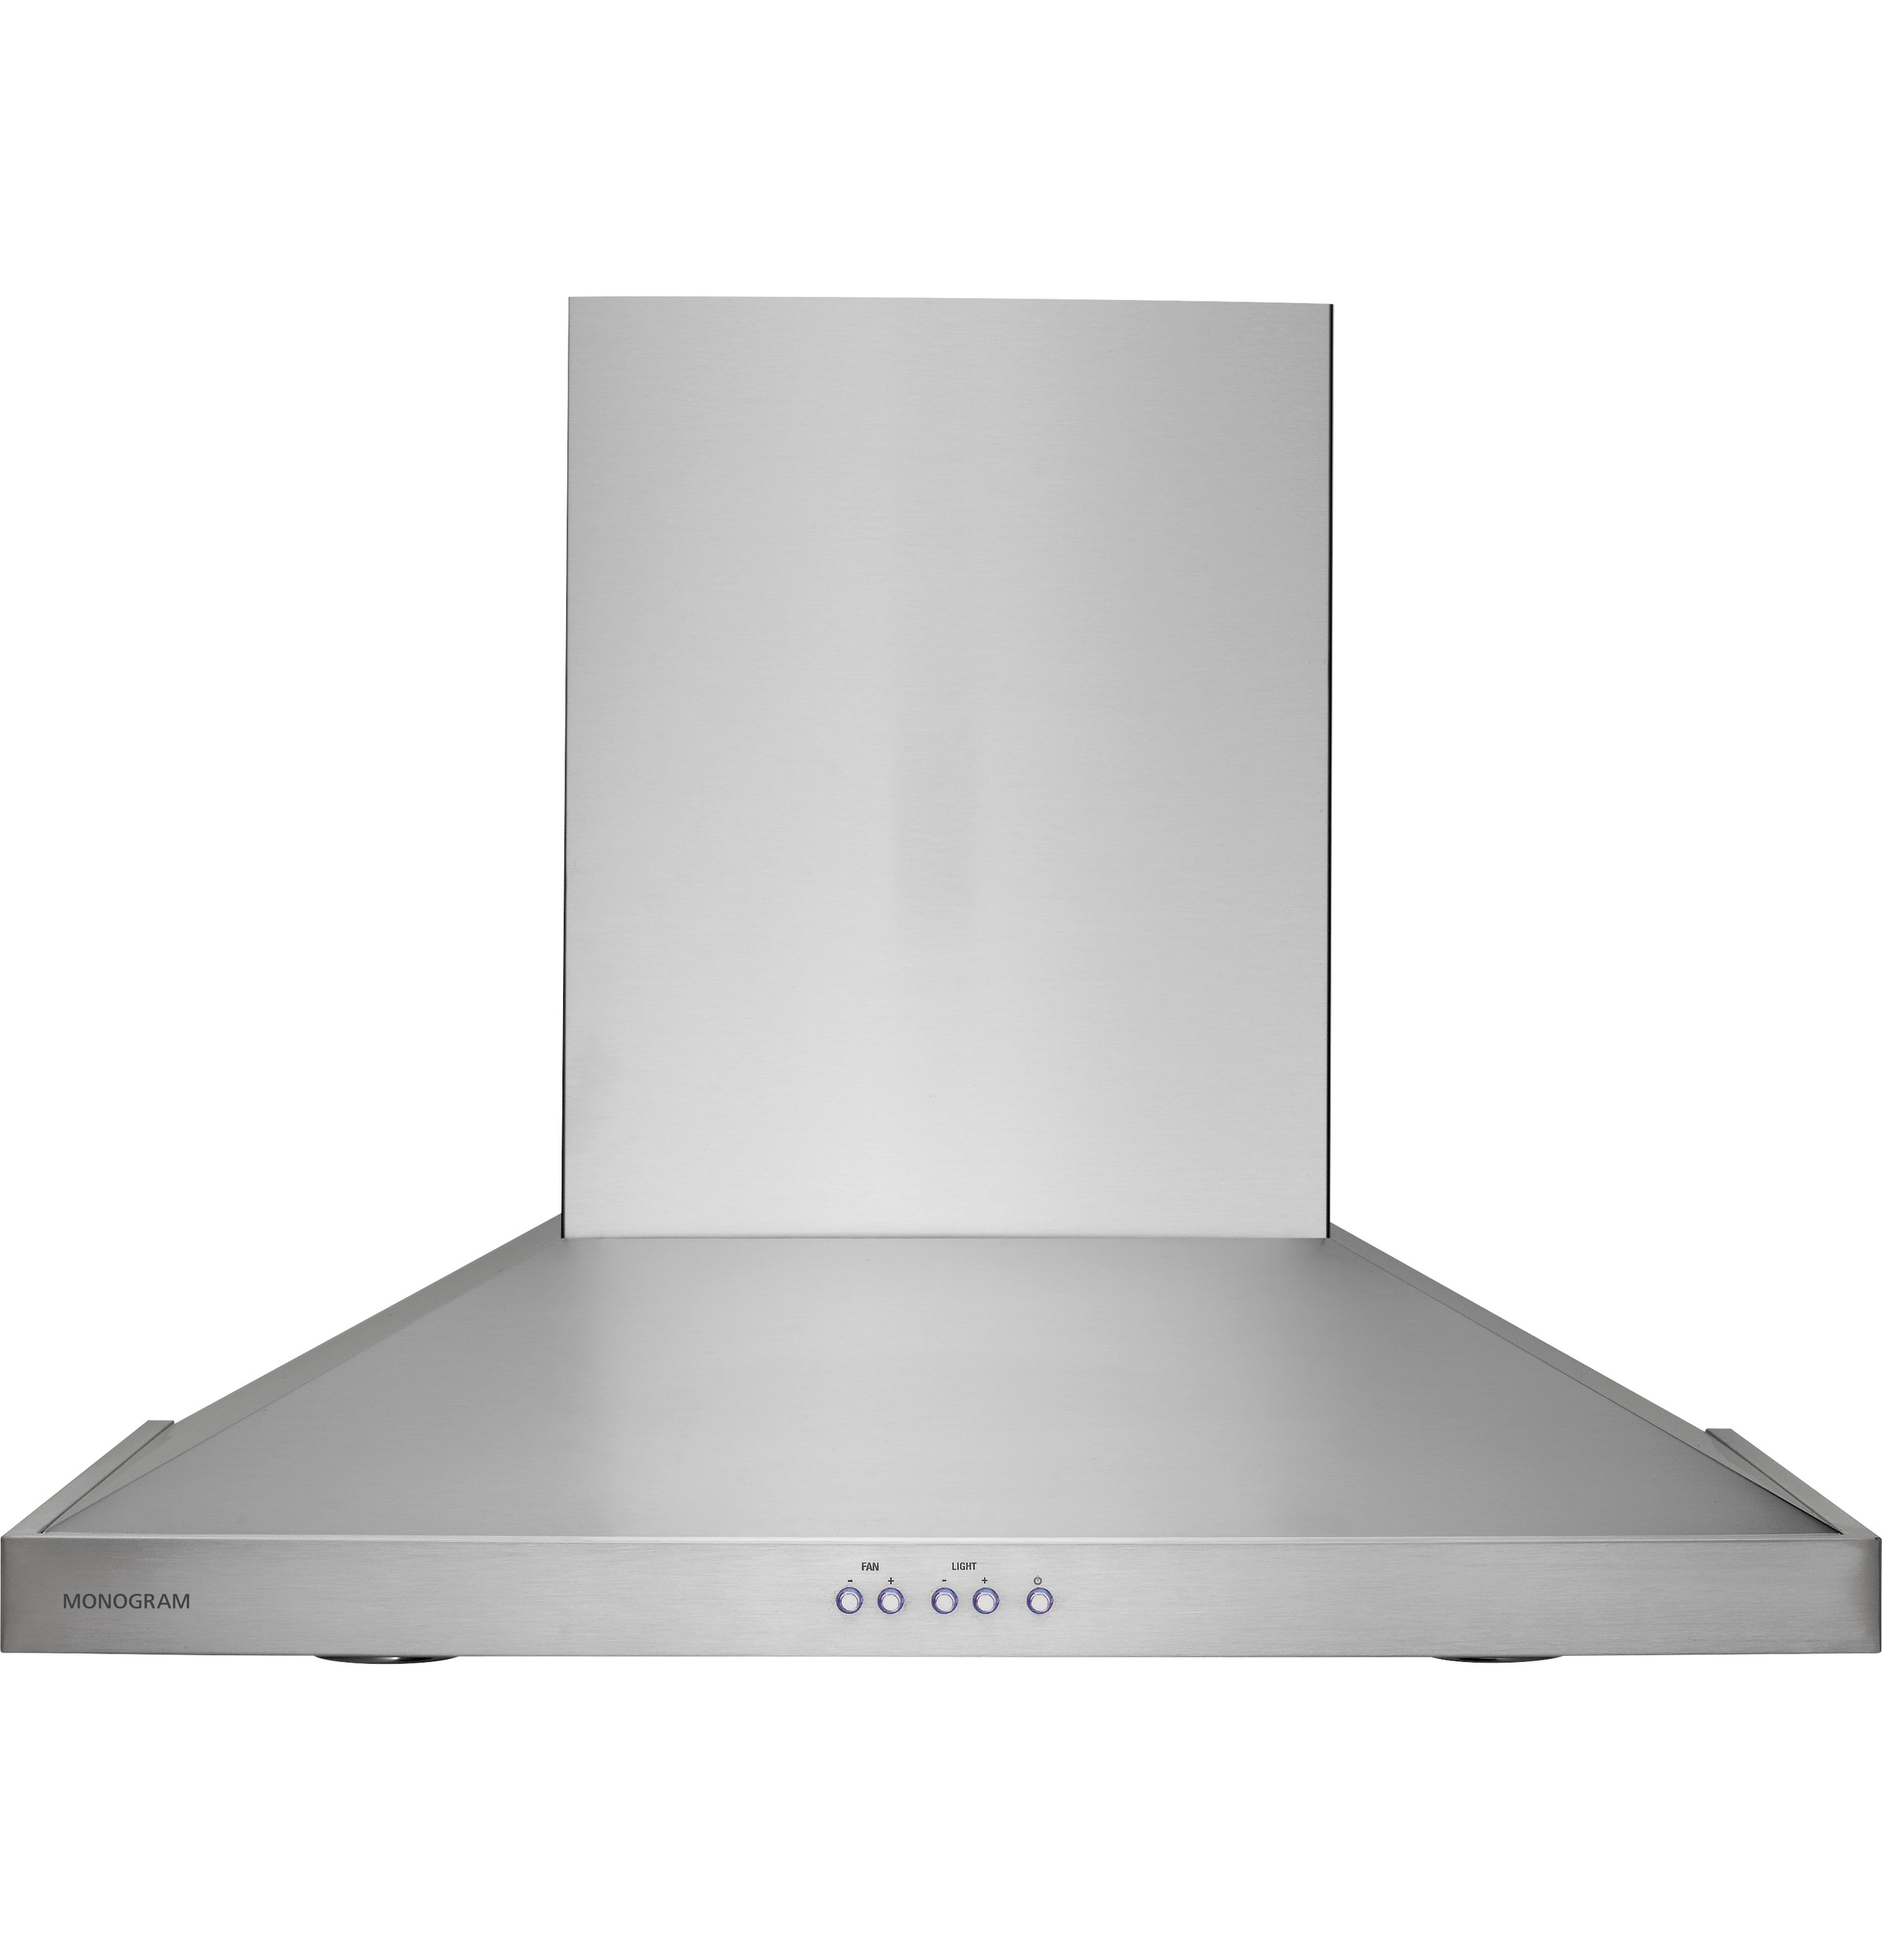 "Monogram Monogram 30"" Wall-Mounted Vent Hood"